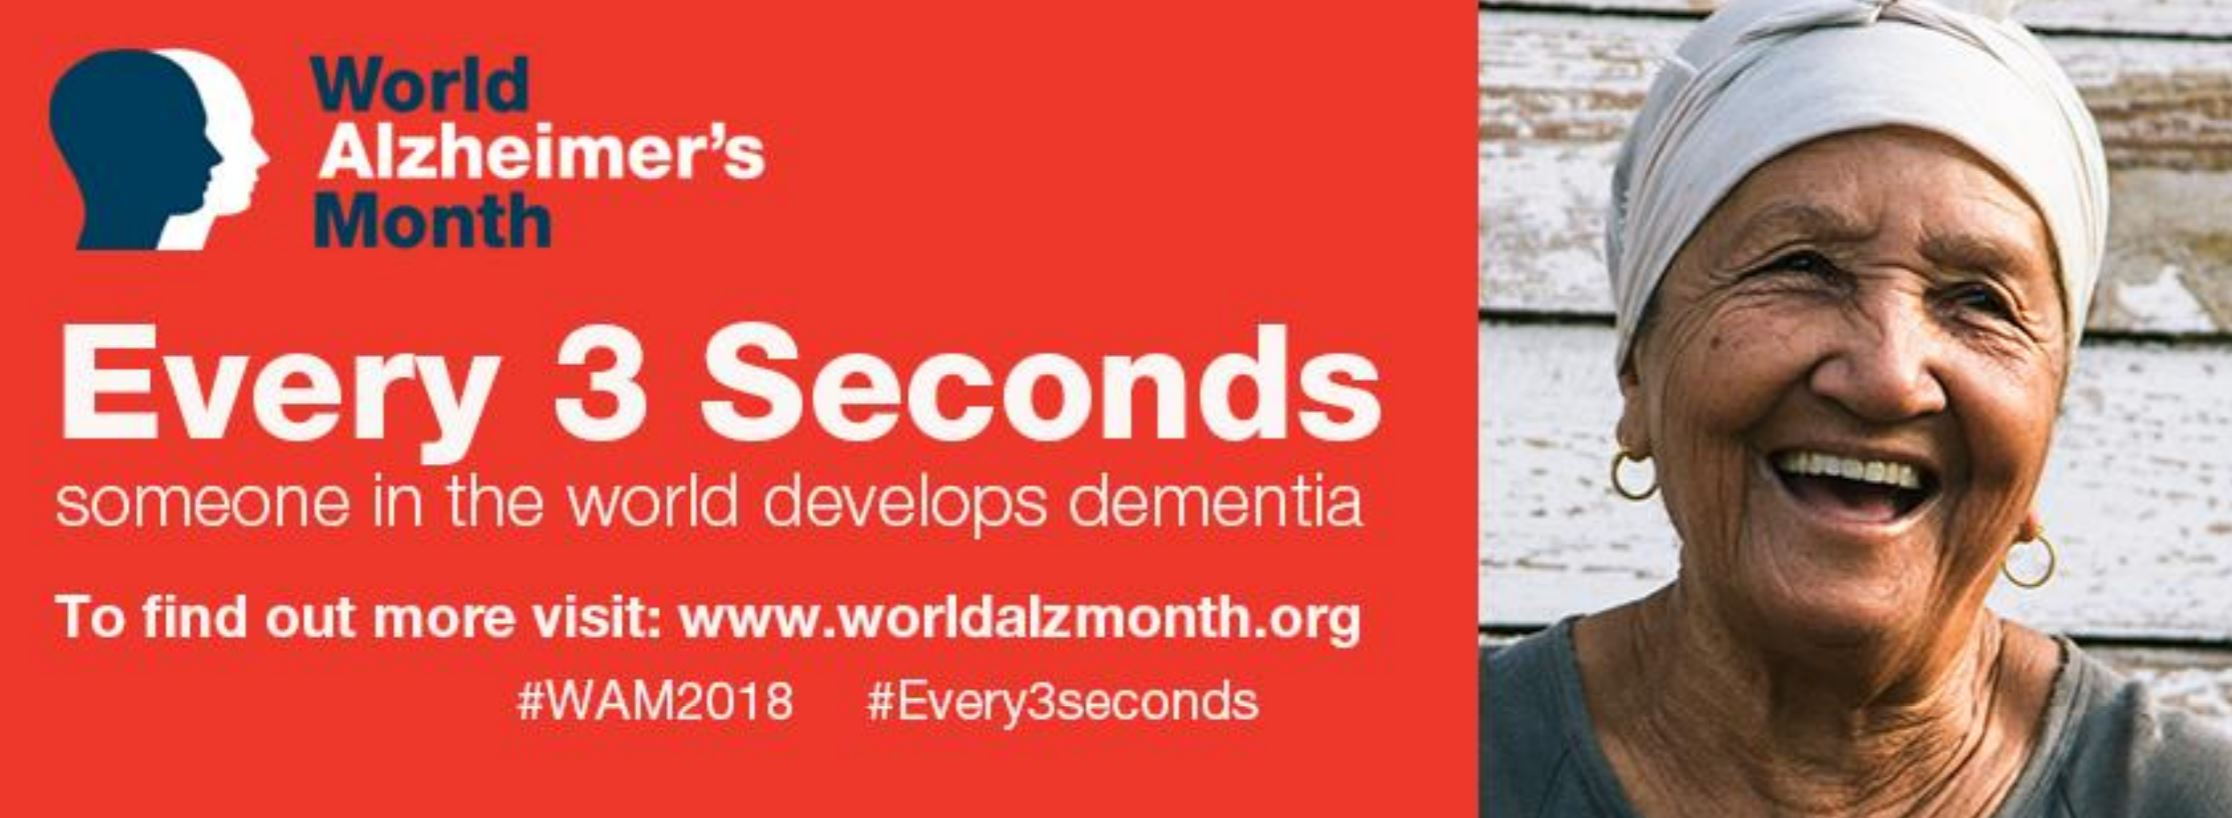 World ALzheimers Month with Arjo 2018